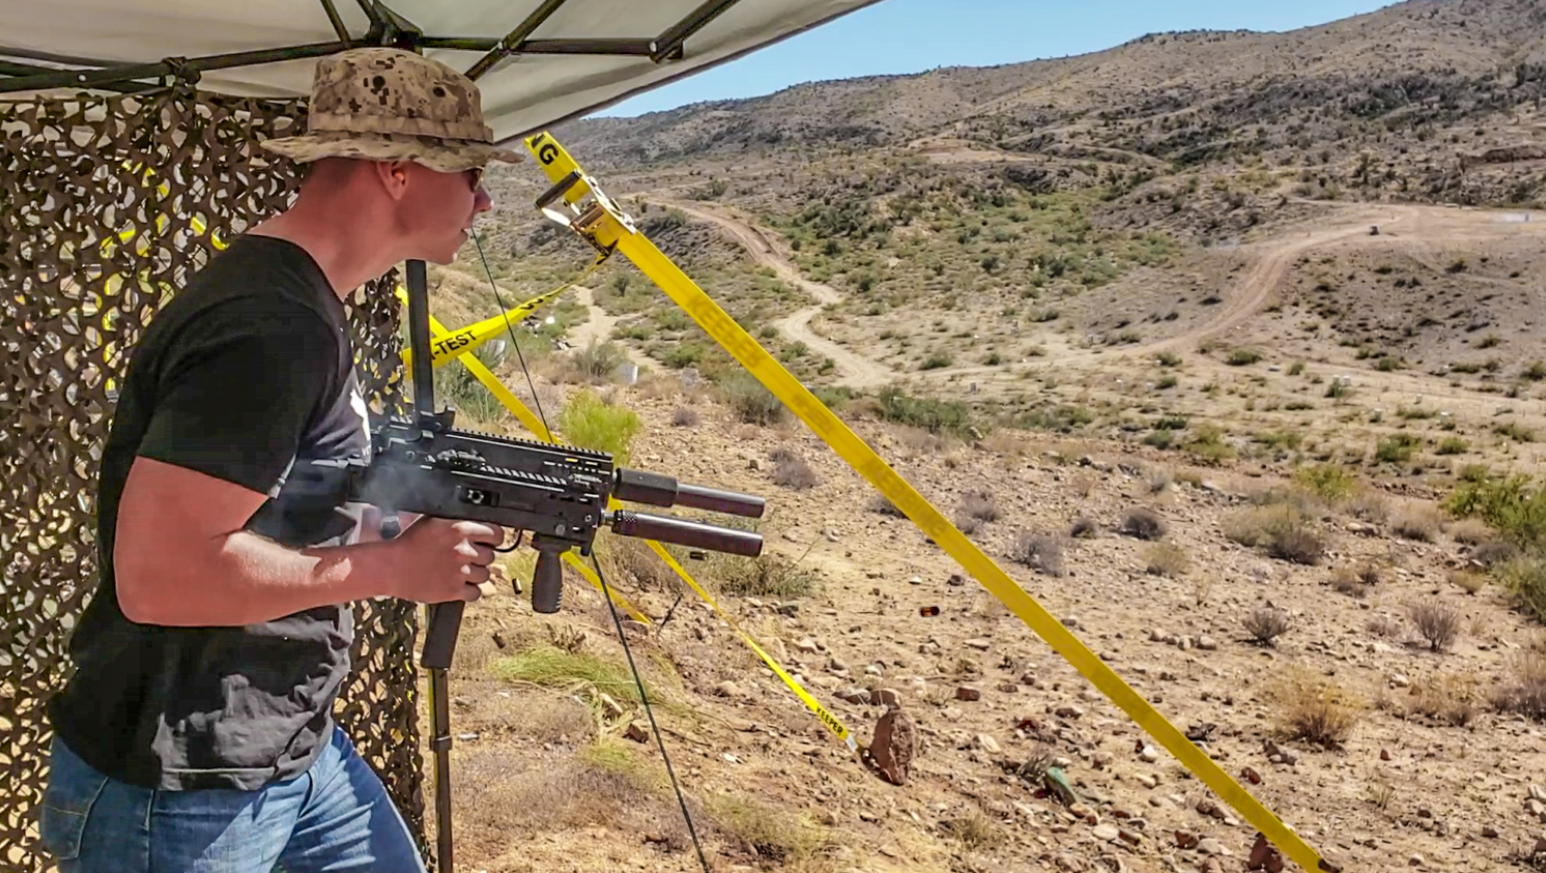 The Big Sandy 2021 Machine Gun Shoot is on for March